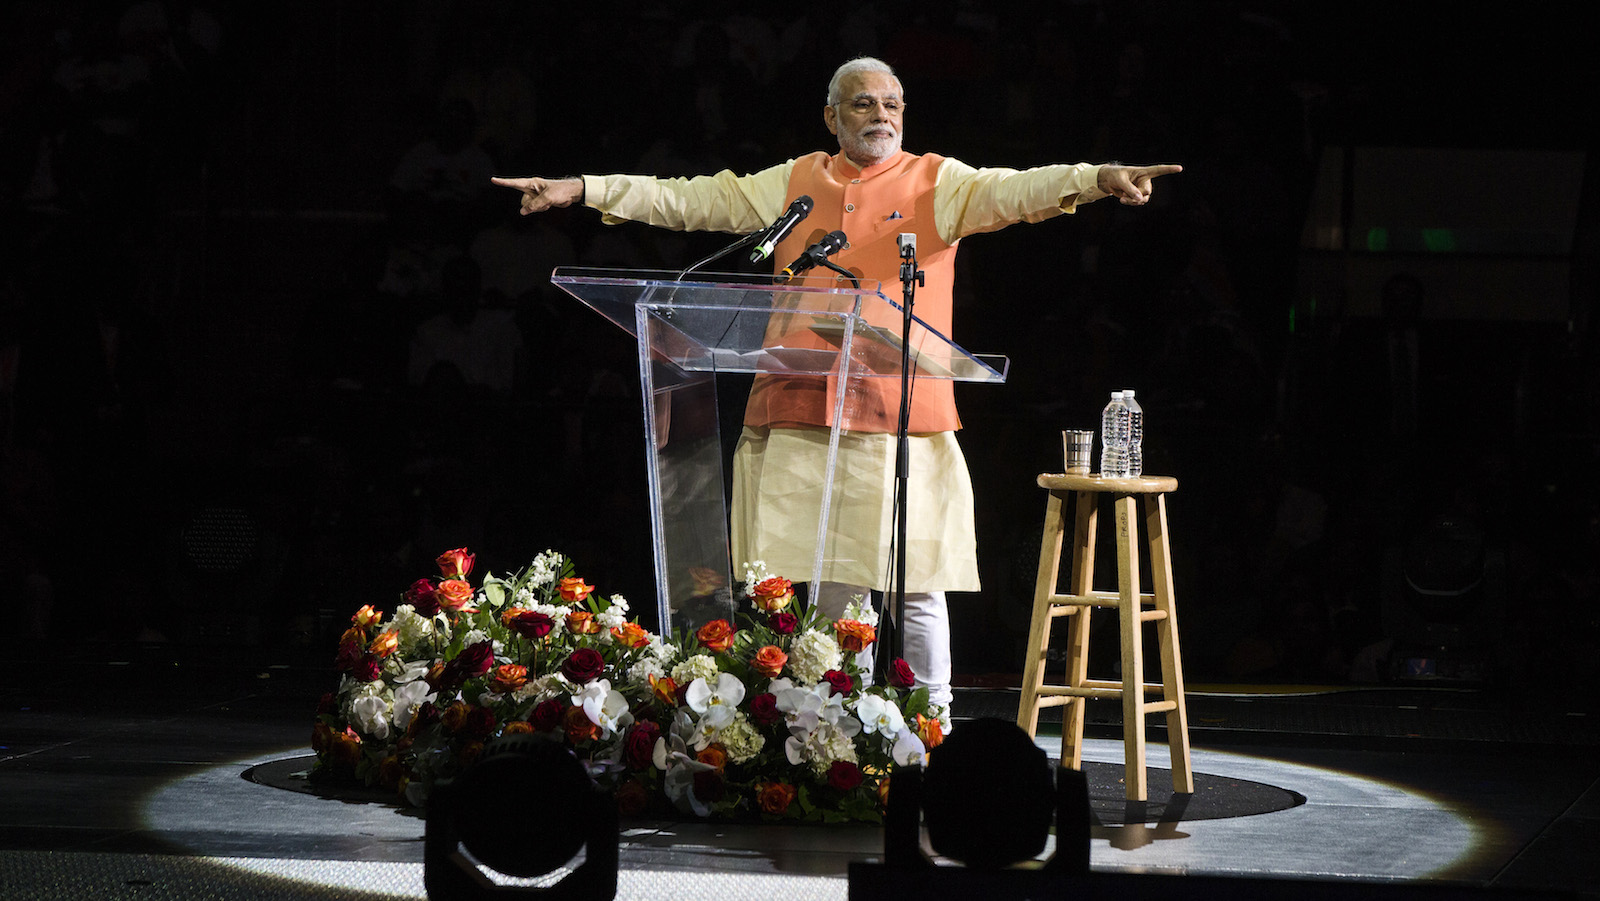 India's Prime Minister Narendra Modi gestures while speaking at Madison Square Garden in New York.